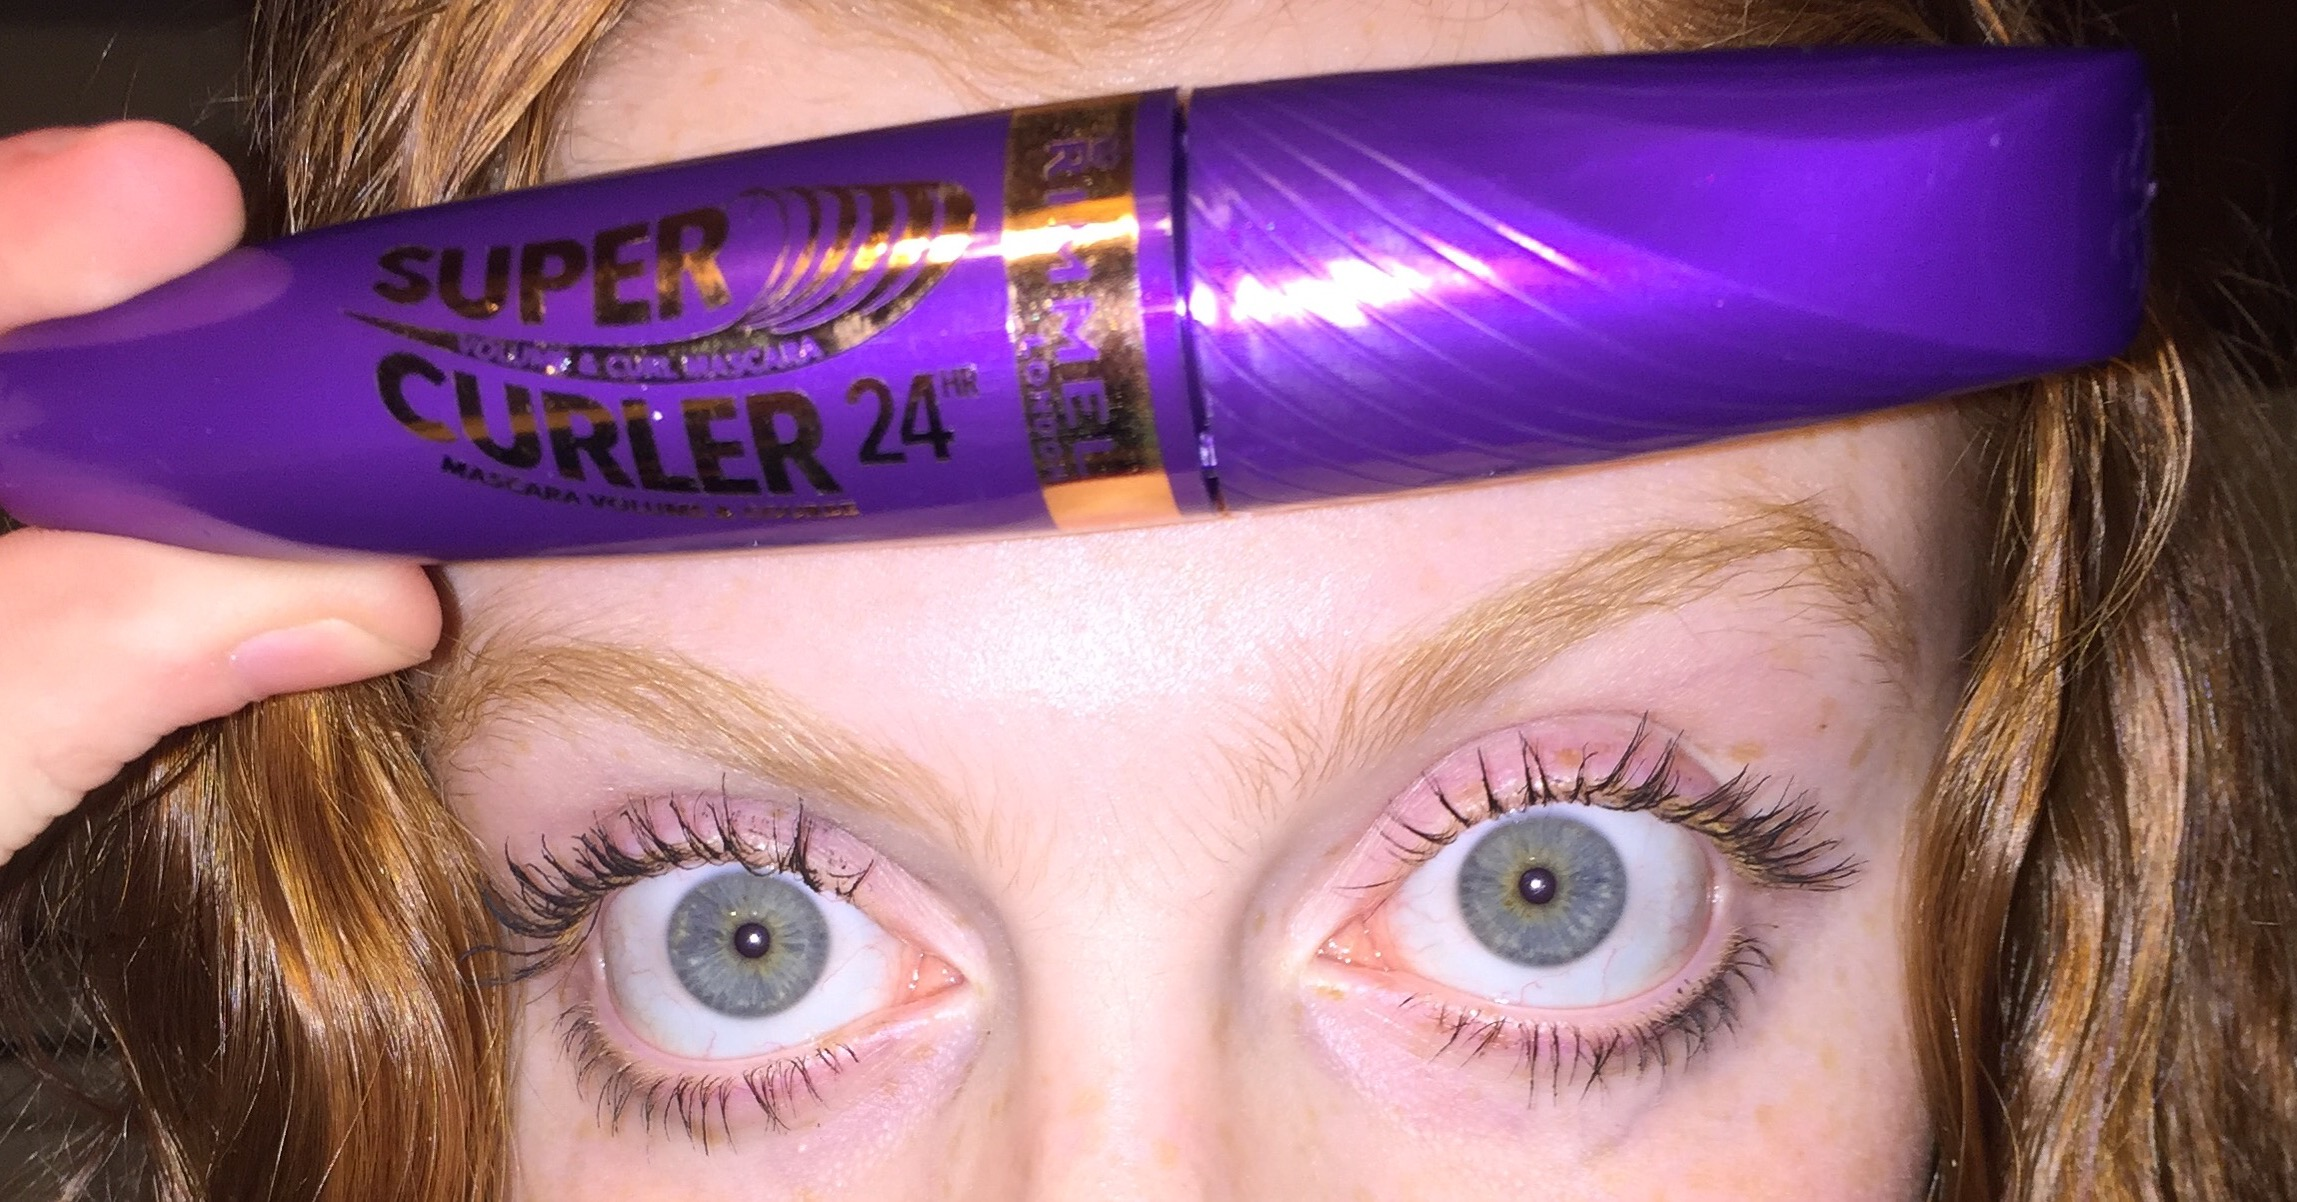 CREATE ULTRA-CURVACEOUS LASHES IN THE BLINK OF AN EYE WITH NEW 24 HOUR SUPERCURLER MASCARA FROM RIMMEL LONDON